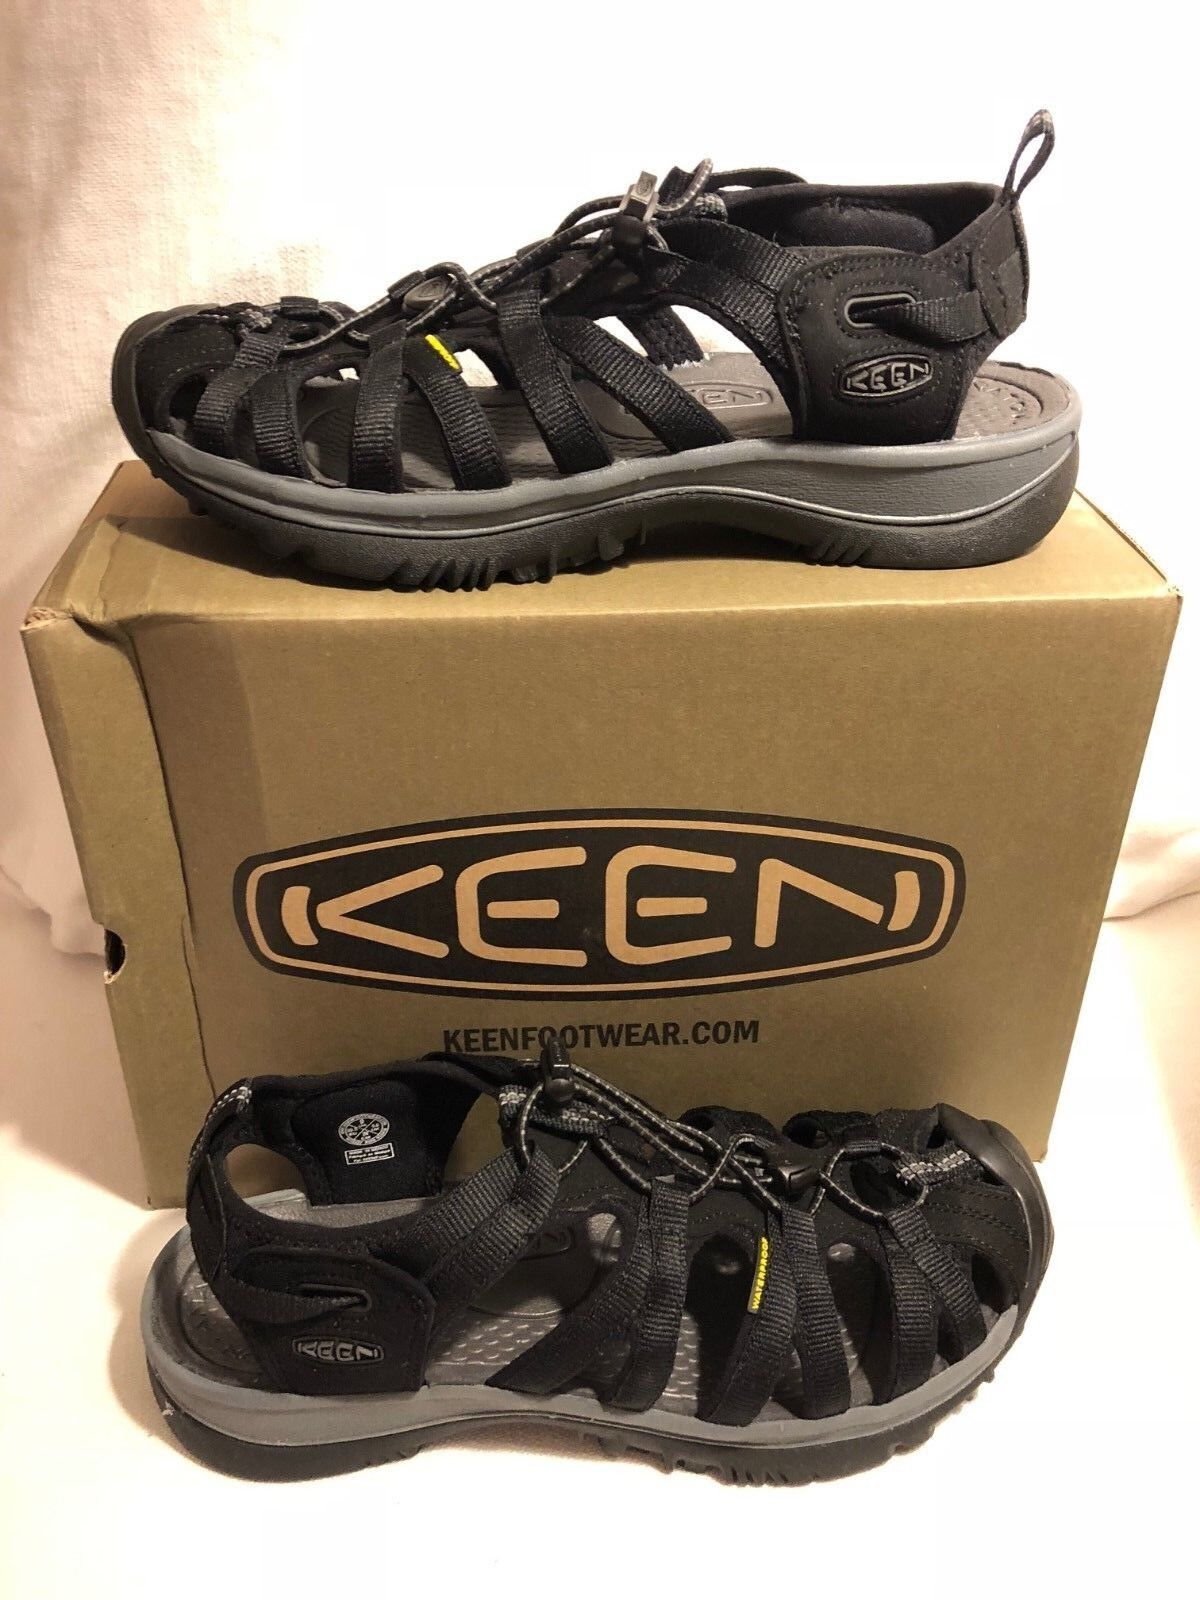 Keen Whisper nero Magnet Sport Sandal Wouomo Dimensiones 5-11 NEW